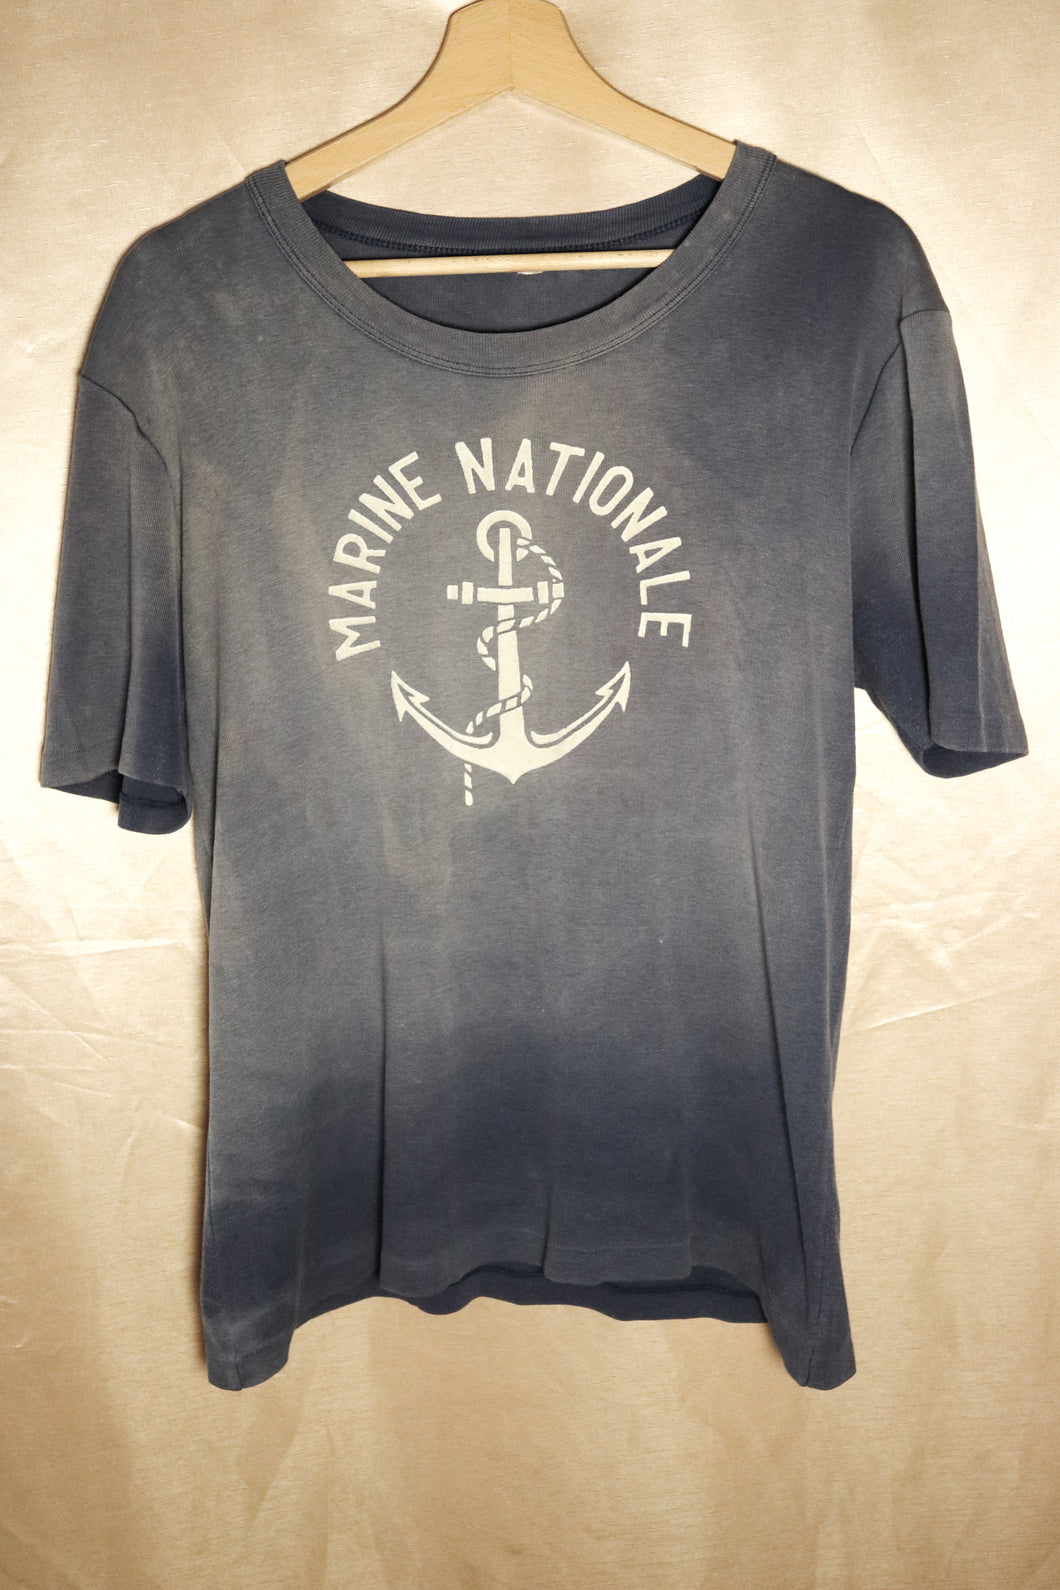 1960 Marine Nationale Tee